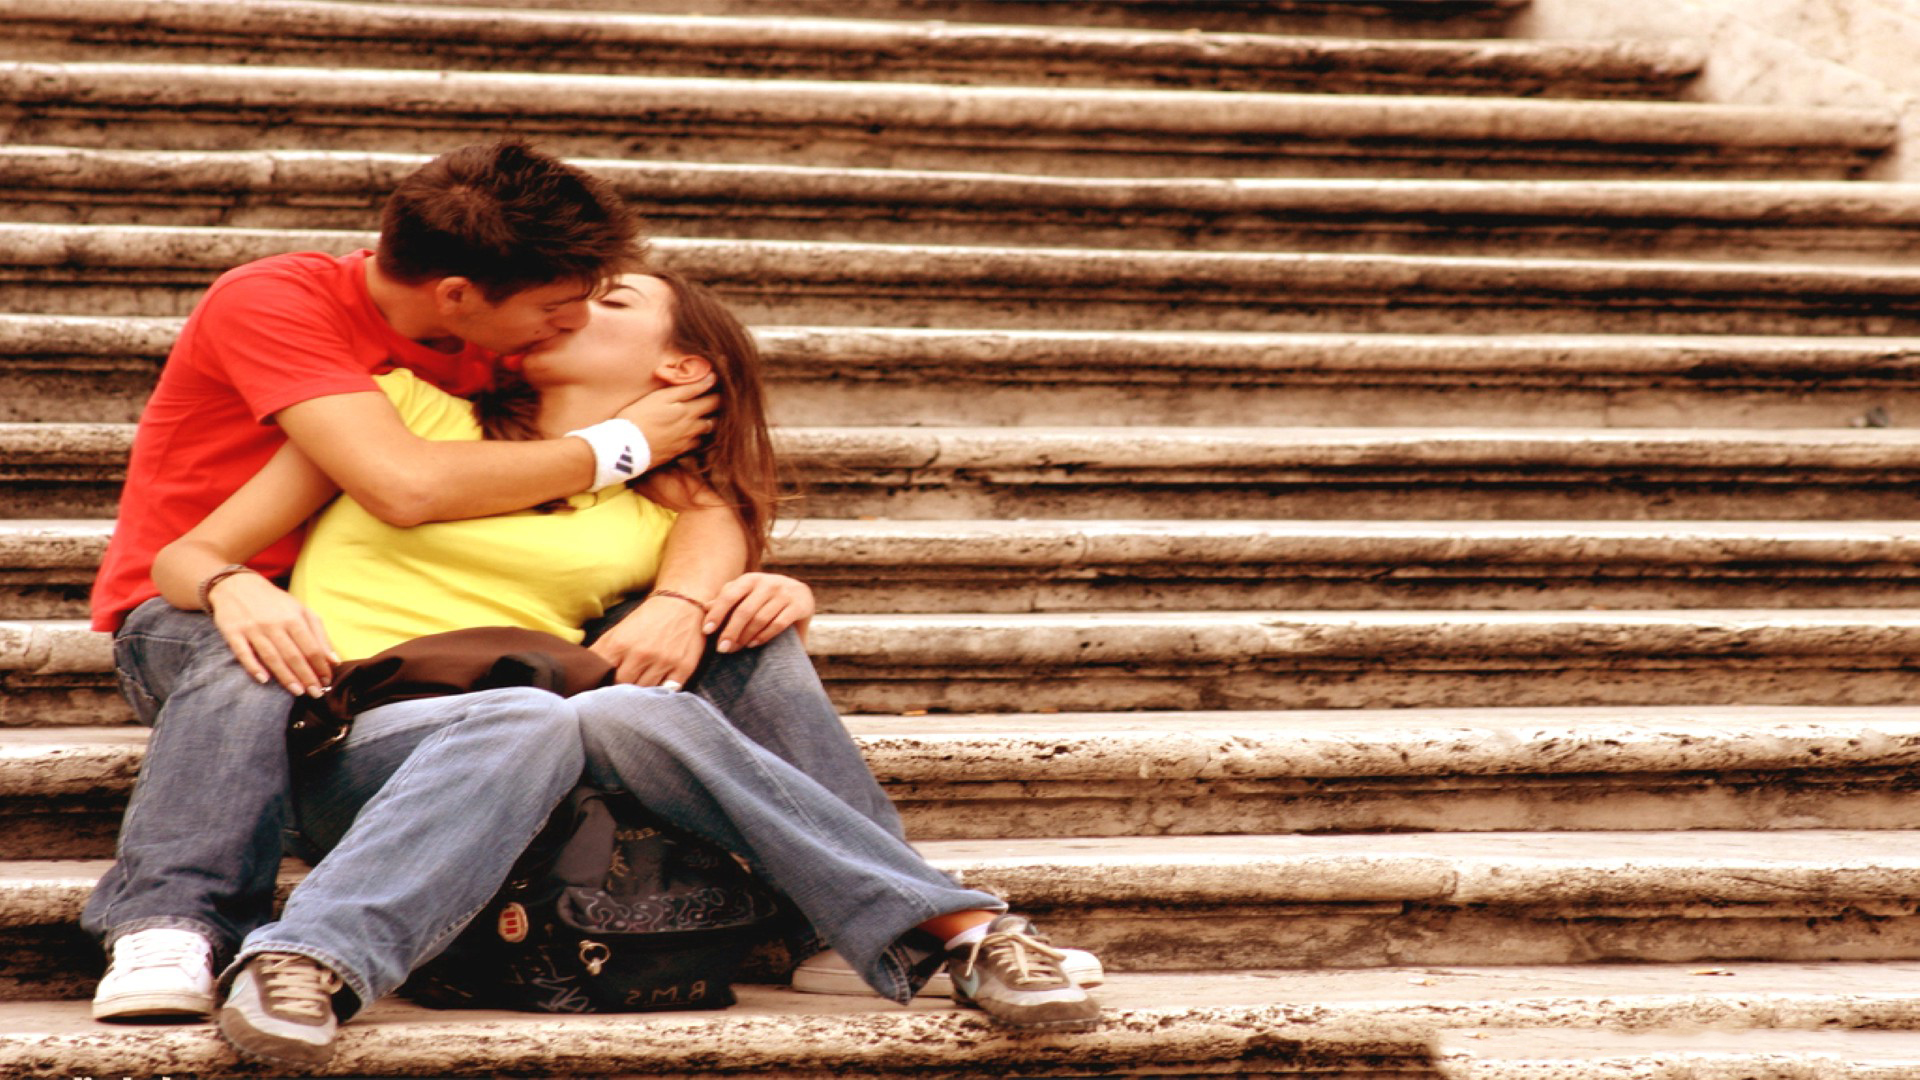 Cute Romantic Love Kiss Images EUR Image Adorable Wall